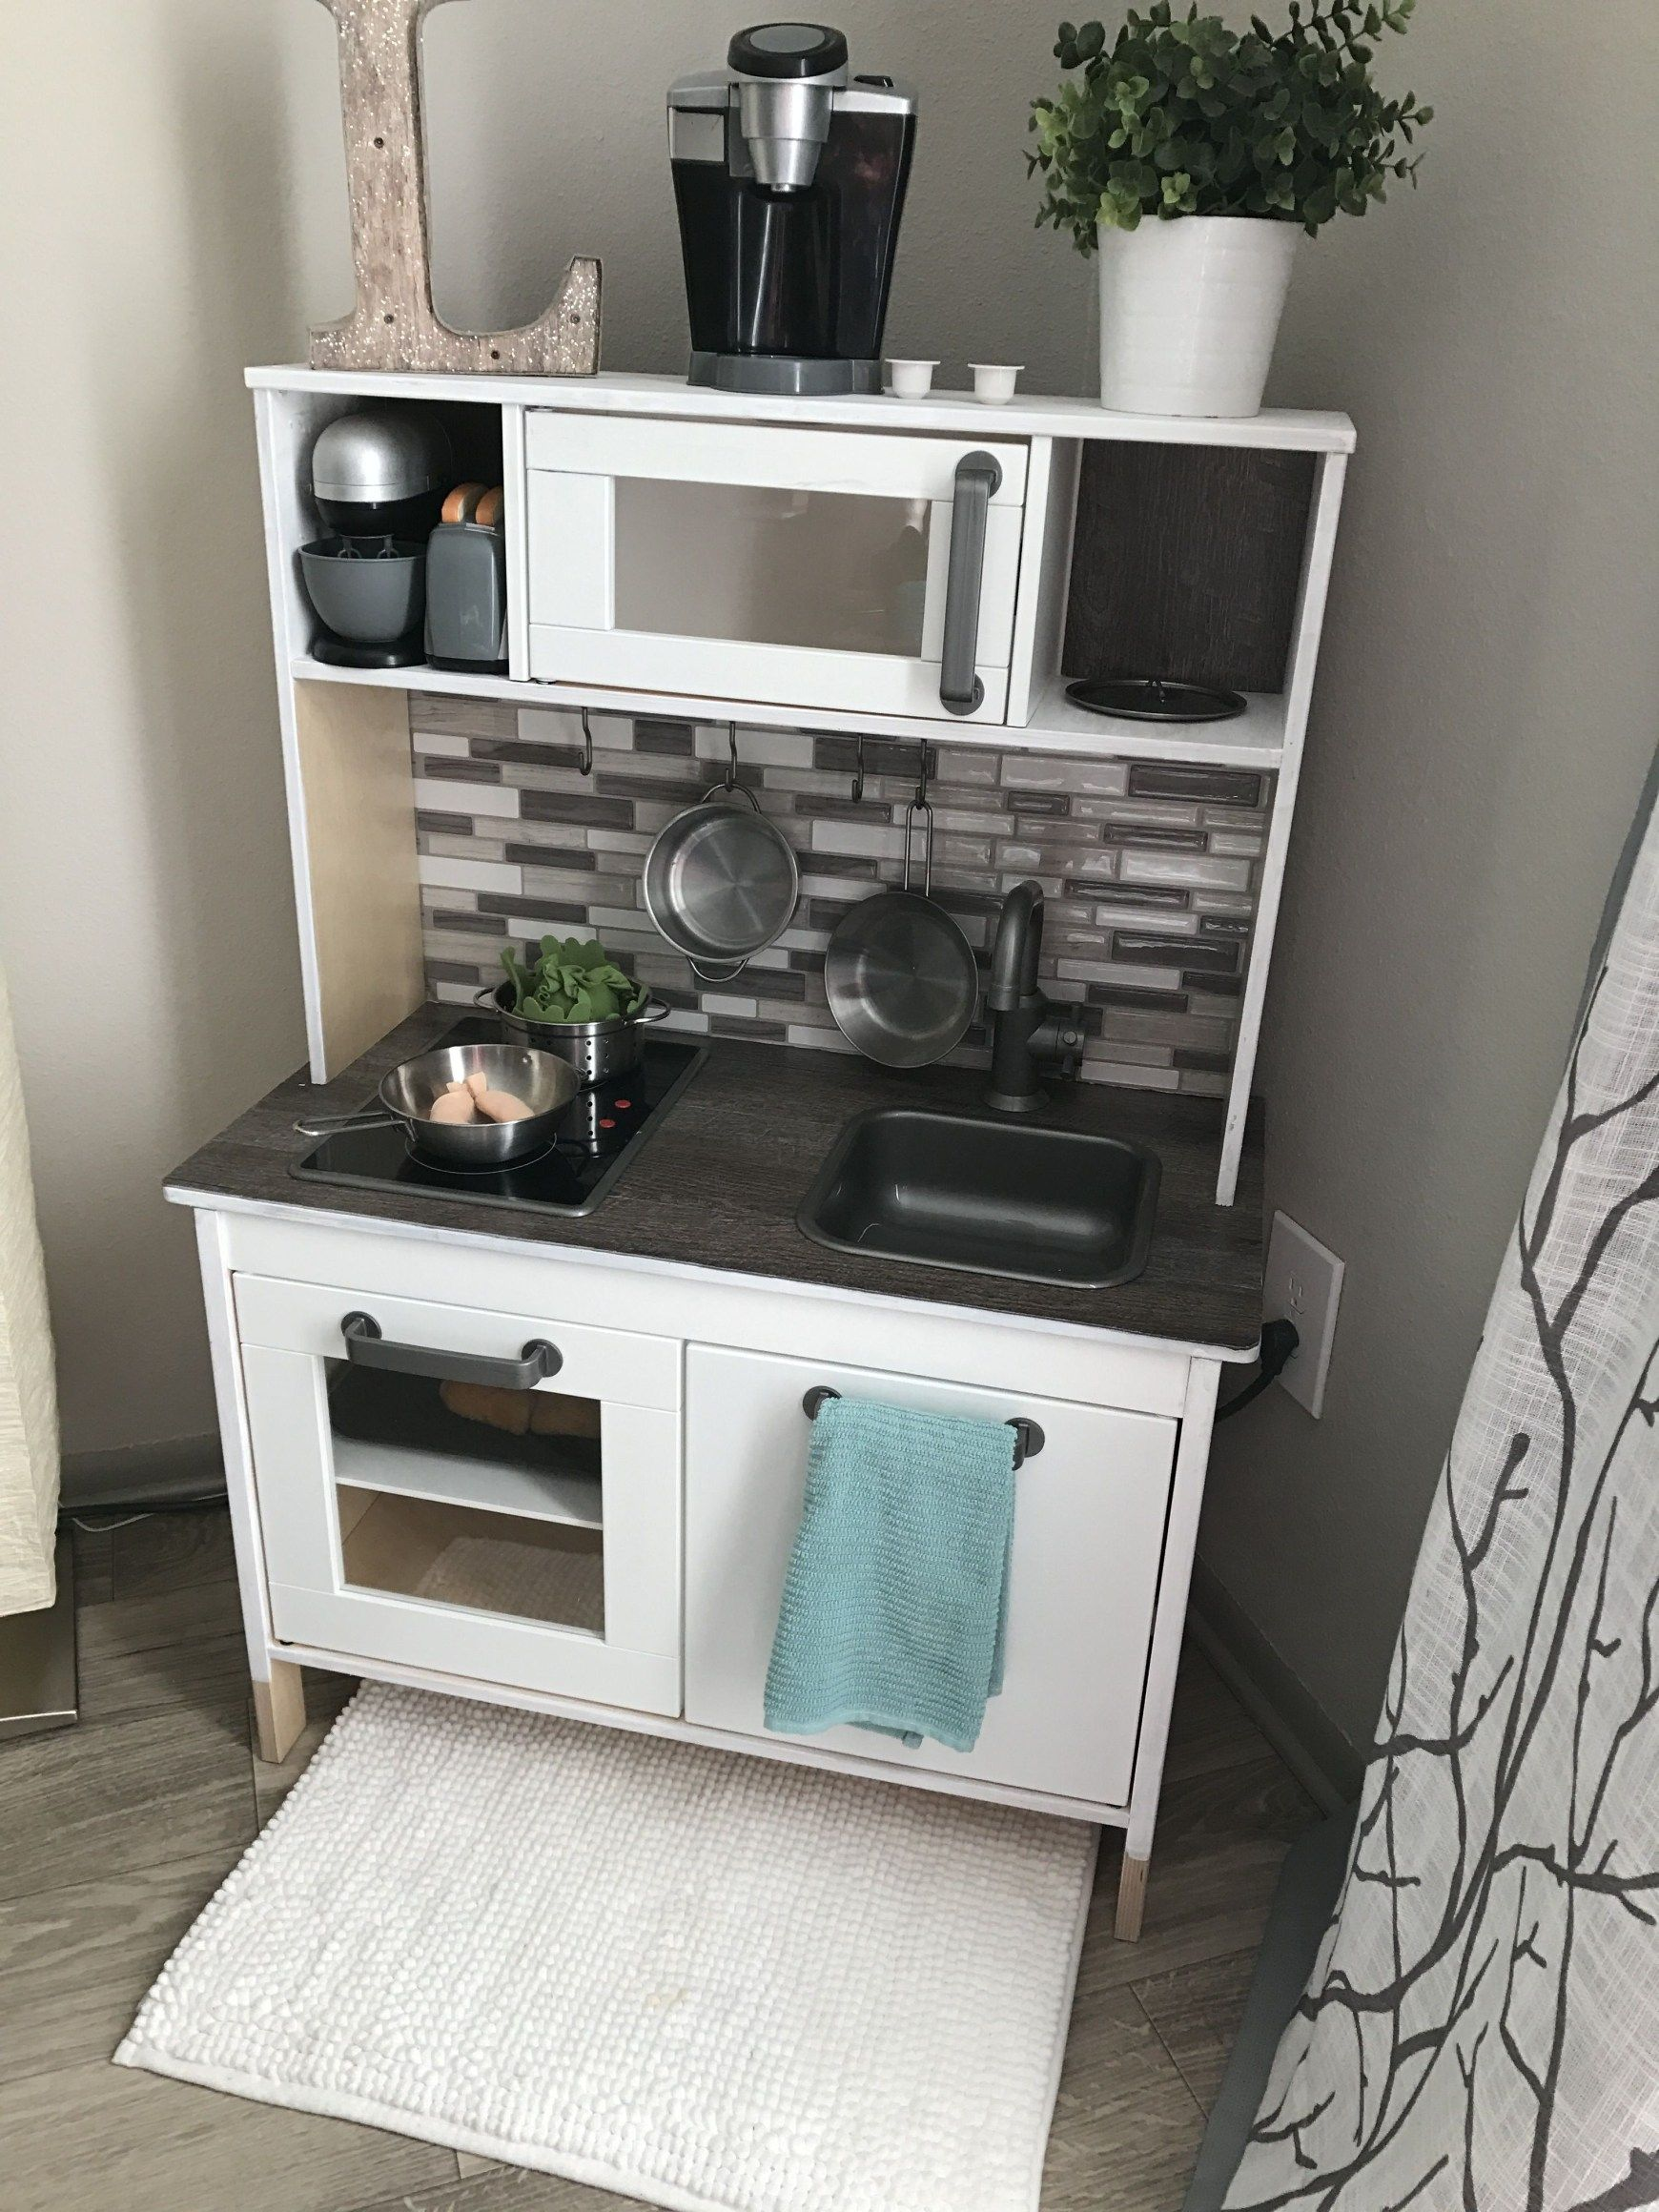 10x10 Bedroom Layout Ikea: 30 Beautiful Picture Of Diy Kids Furniture Ideas (With